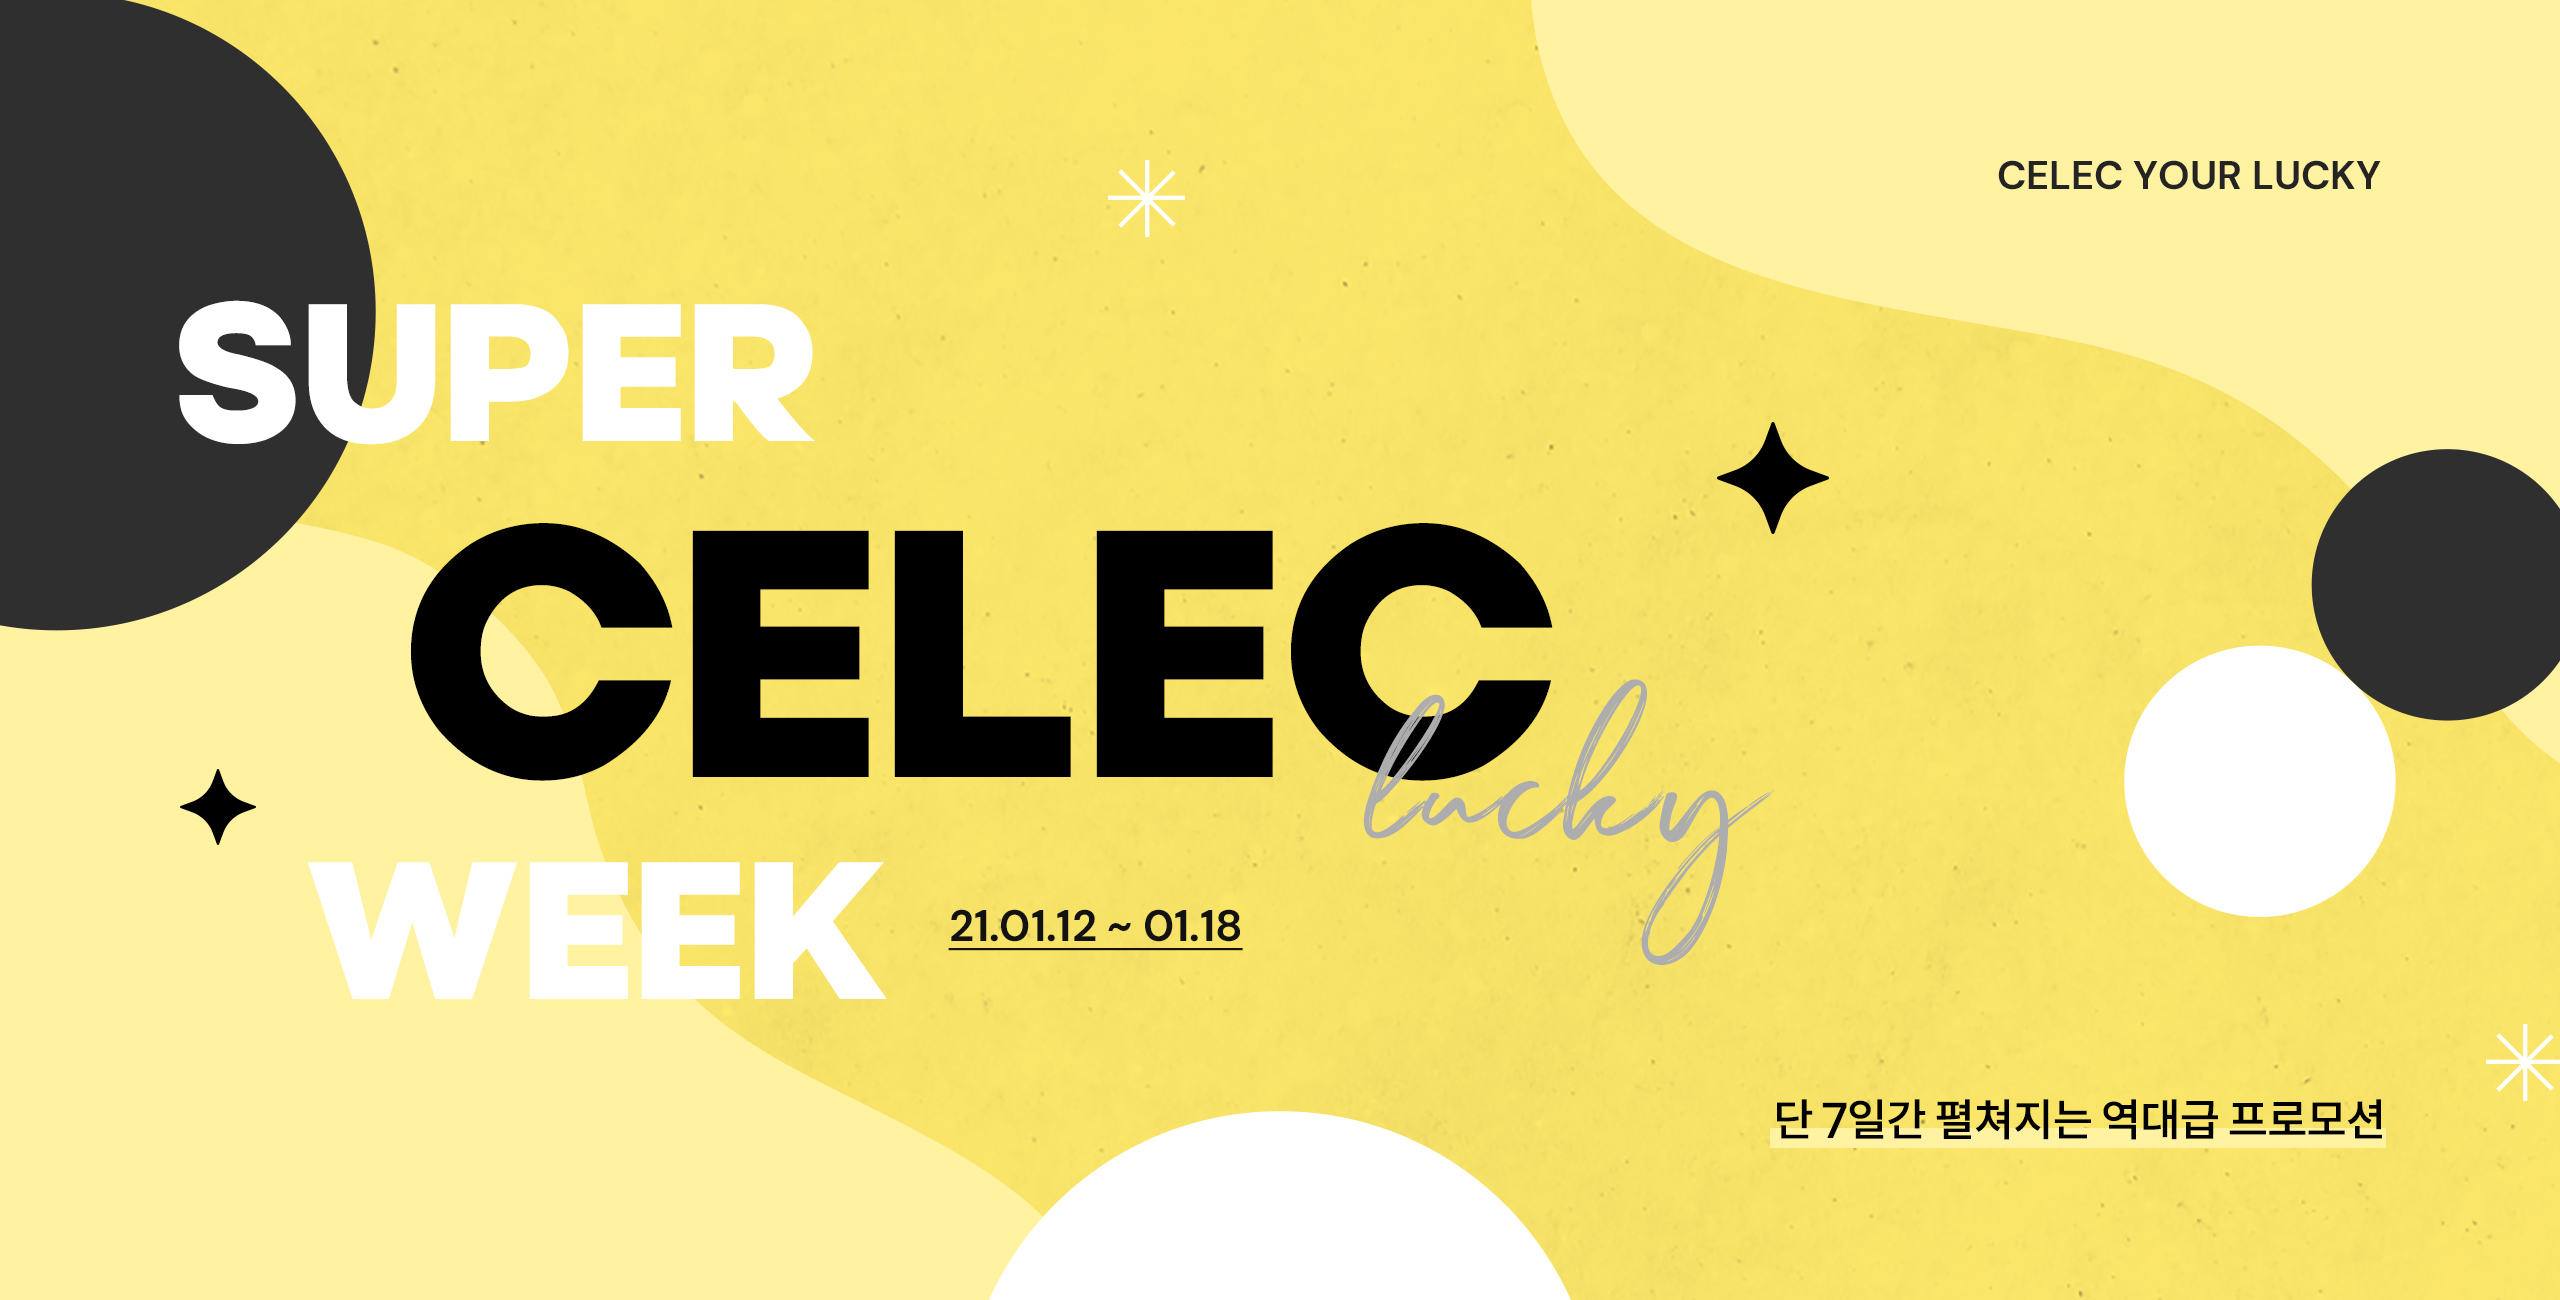 CELEC WEEK Lucky Draw